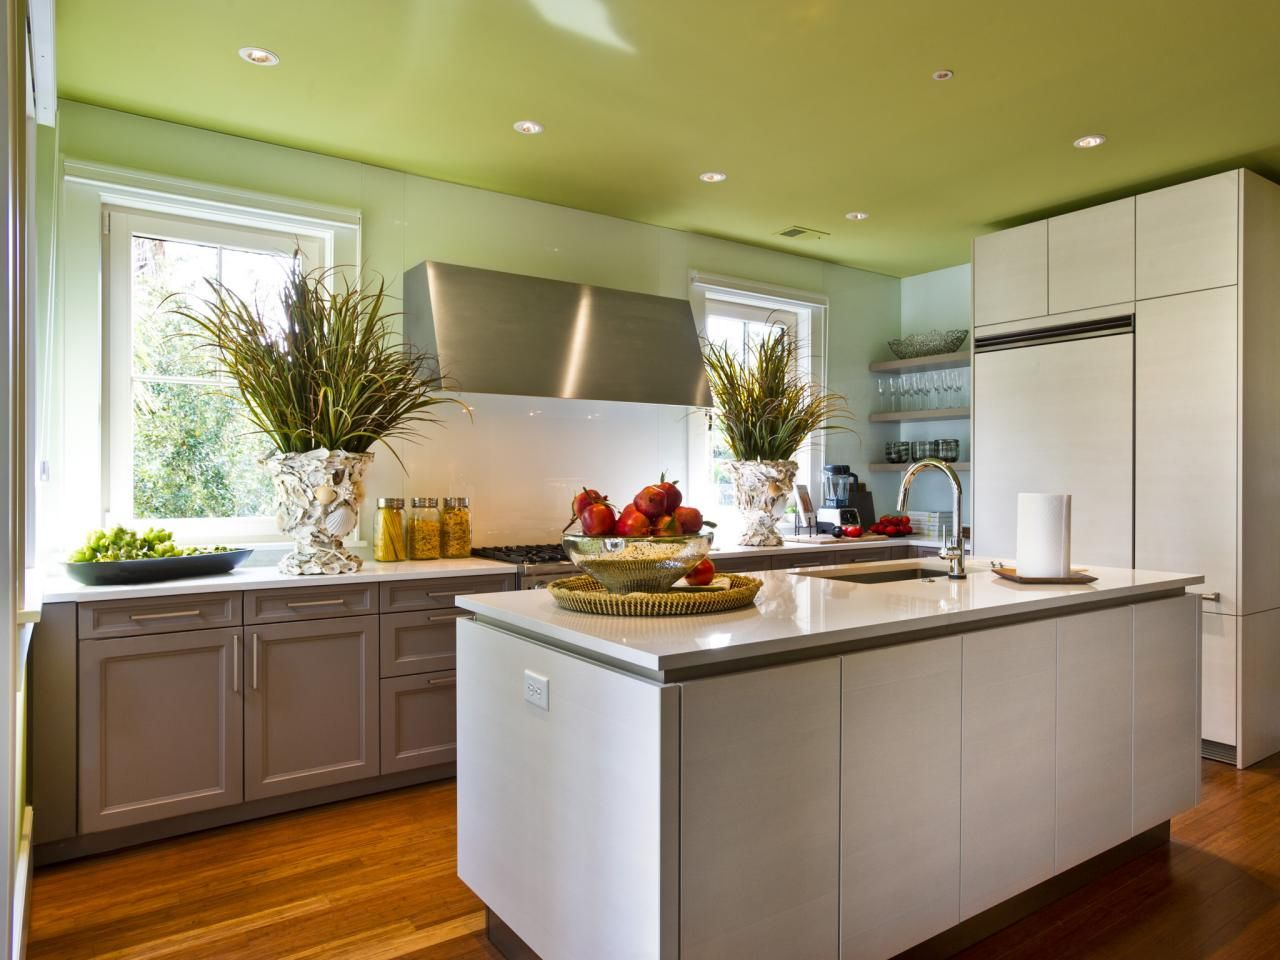 Superieur Mustard Color Paint For Kitchen   Kitchen Track Lighting Ideas Check More  At Http://www.entropiads.com/mustard Color Paint For Kitchen/